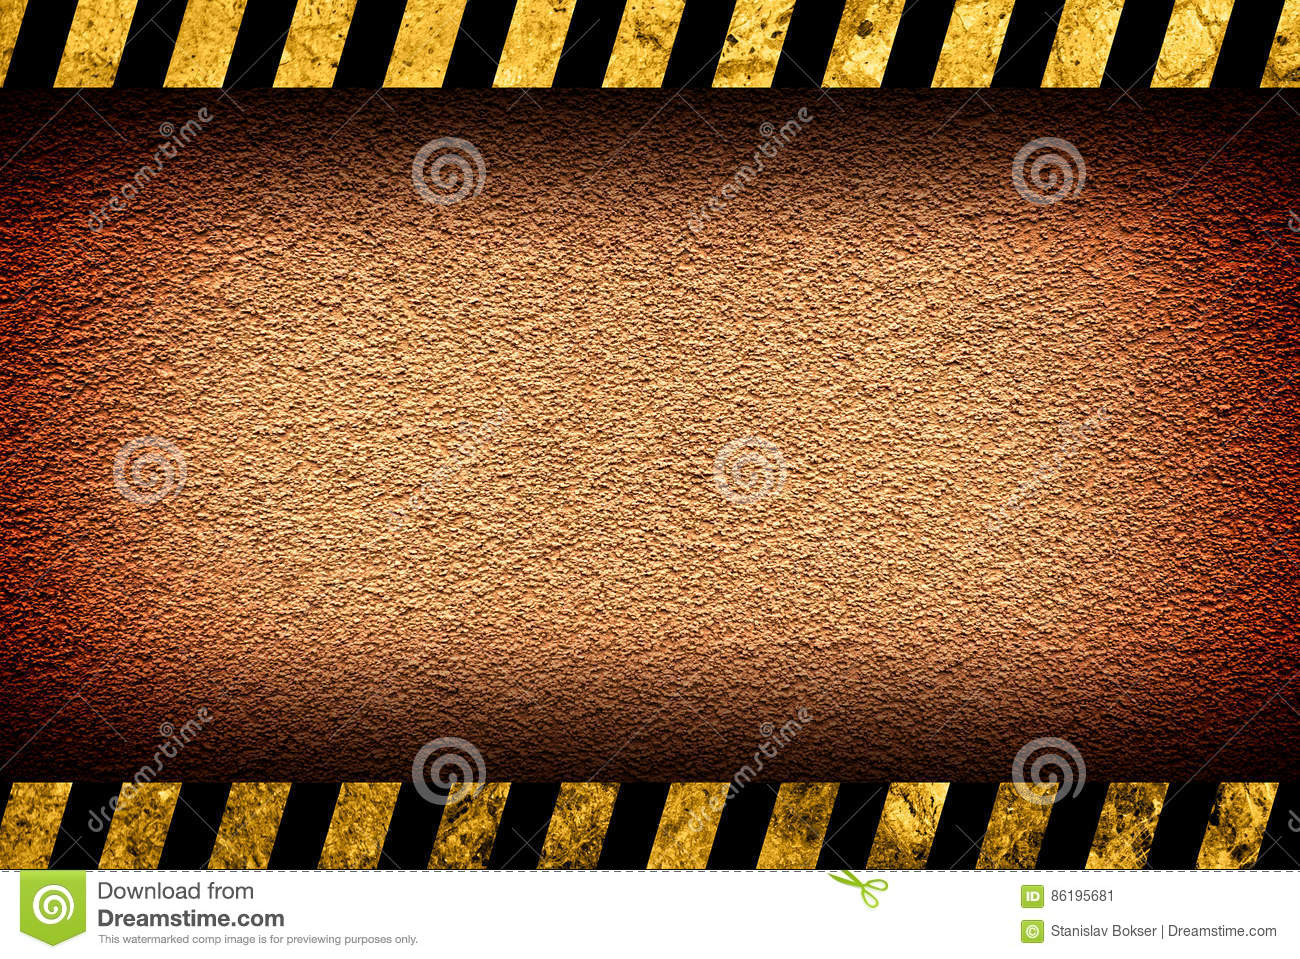 Grunge orange wall background with warning stripes